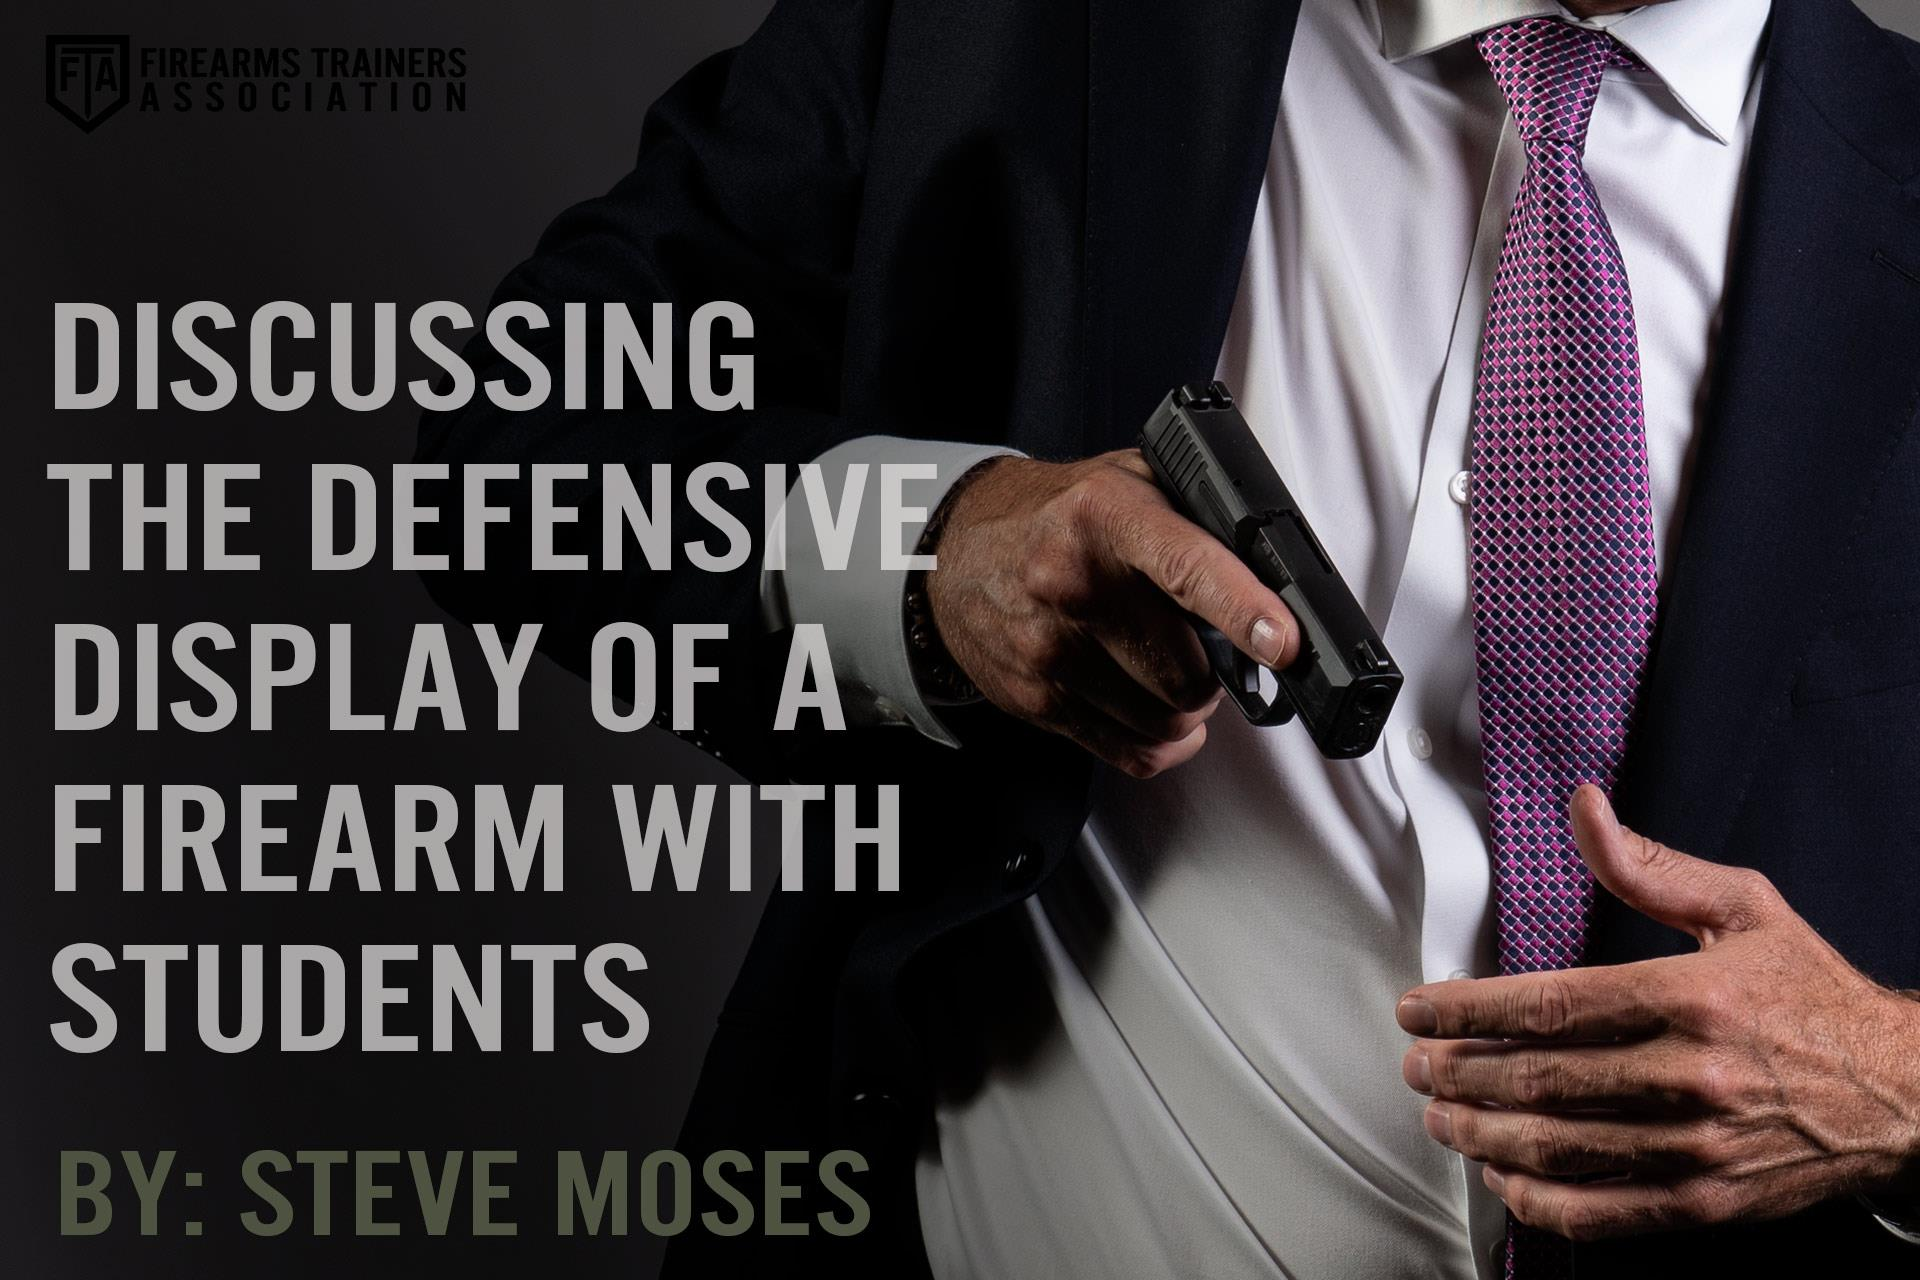 DISCUSSING THE DEFENSIVE DISPLAY OF A FIREARM WITH STUDENTS